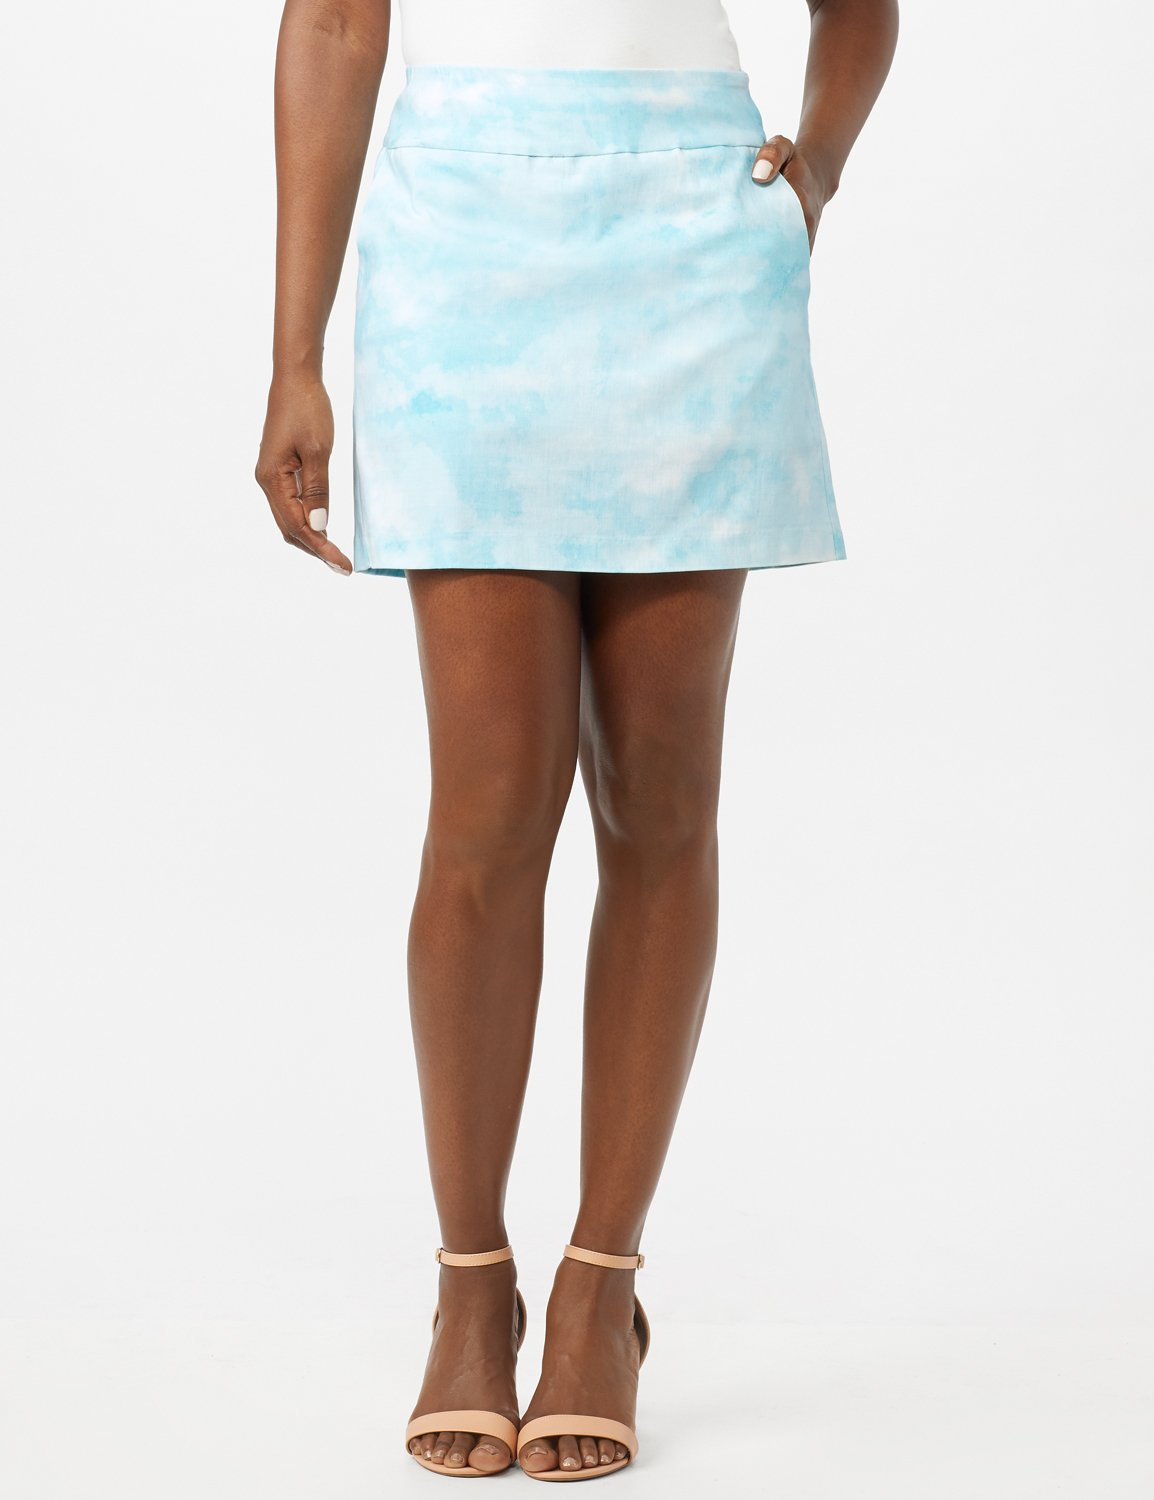 Pull On Tie Dye Skorts with Pockets -Azurine/White - Front